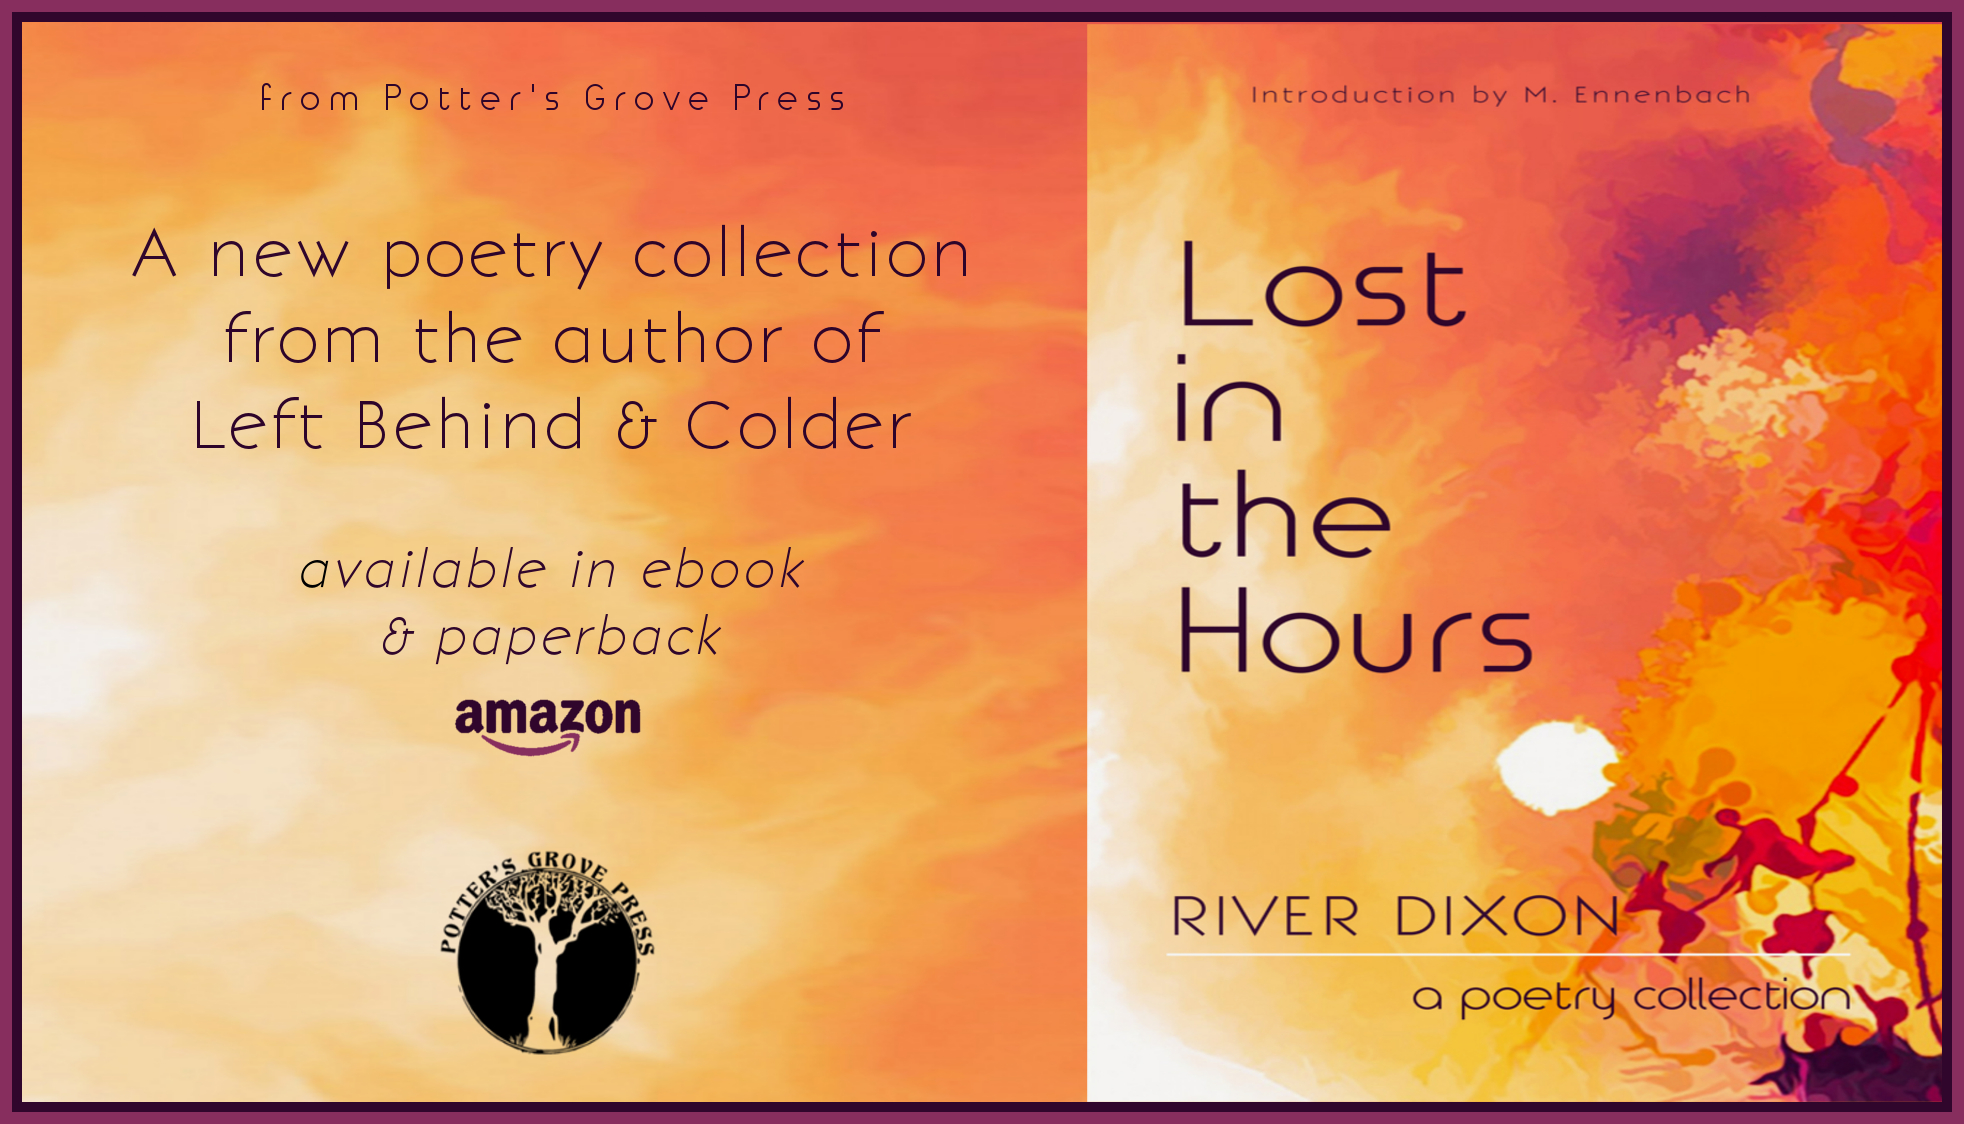 Coming Soon – Lost in the Hours